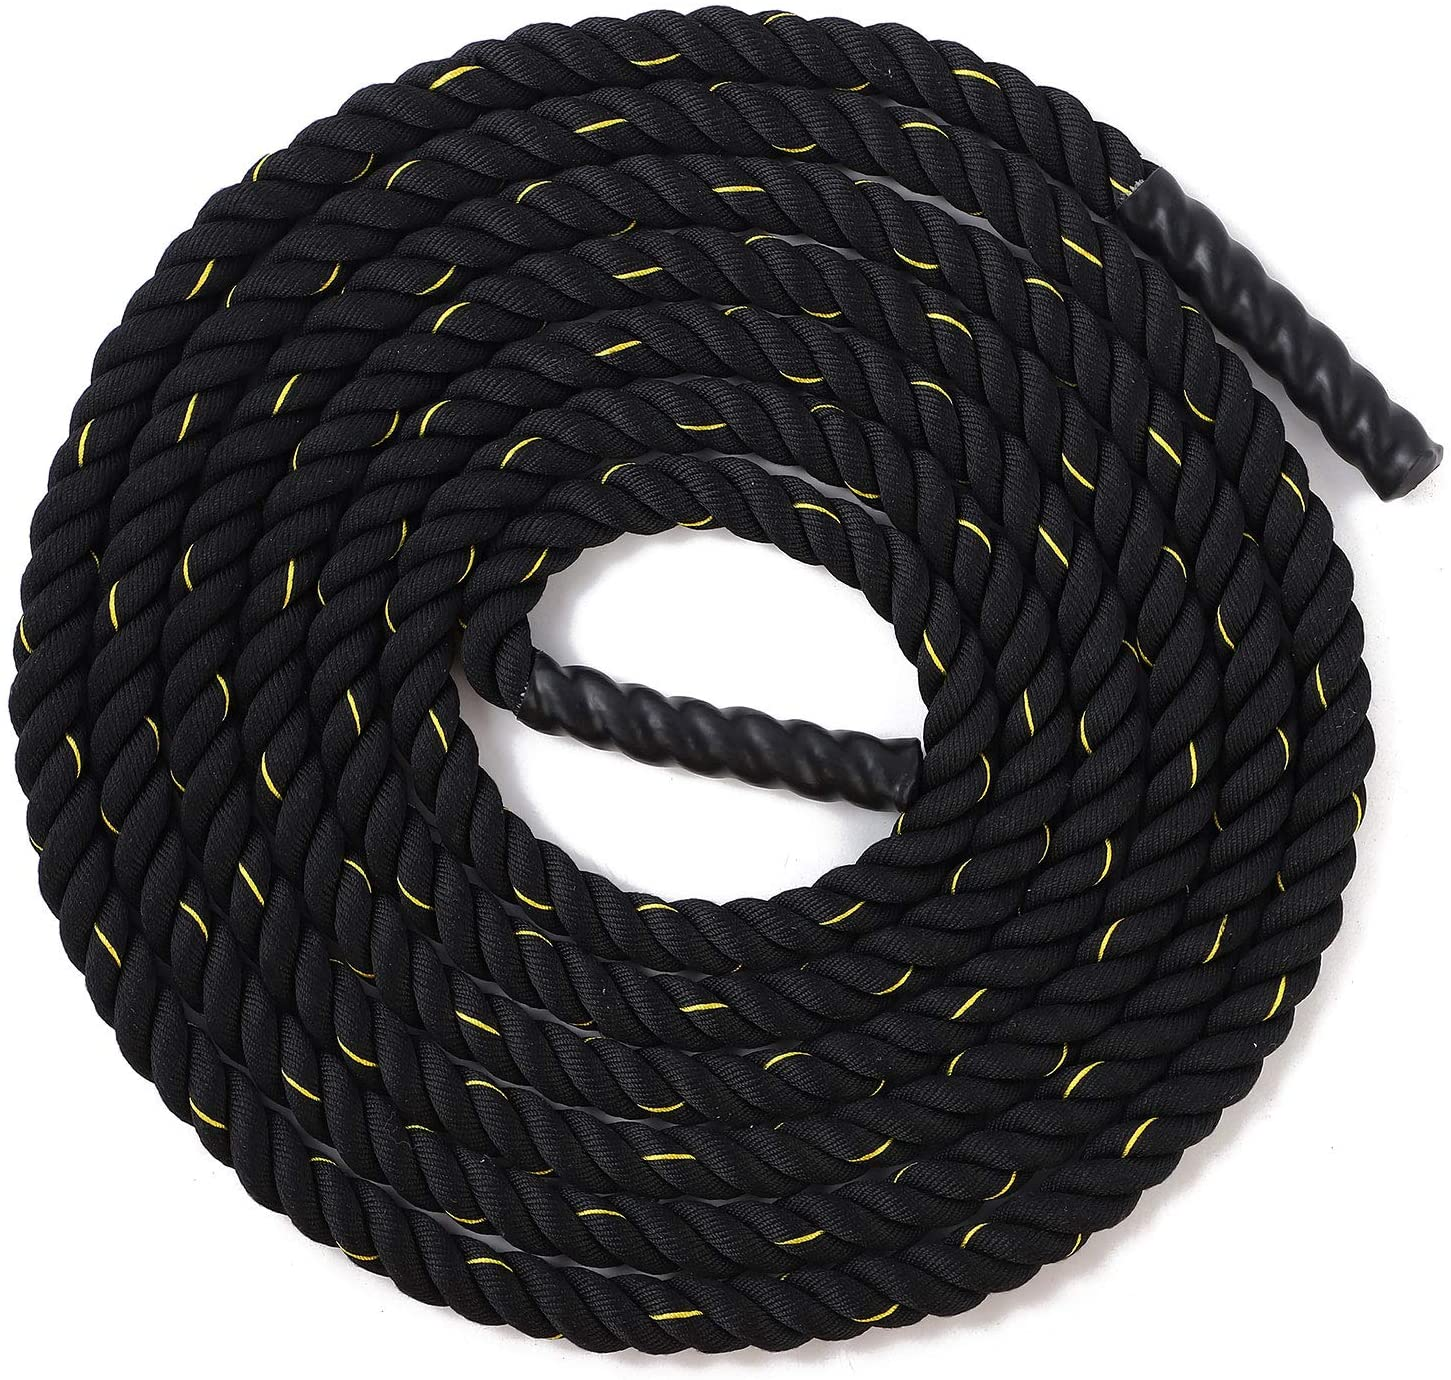 Battle Rope 38mm Diameter Poly Dacron Multiple Lengths Workout Exercise Training Rope